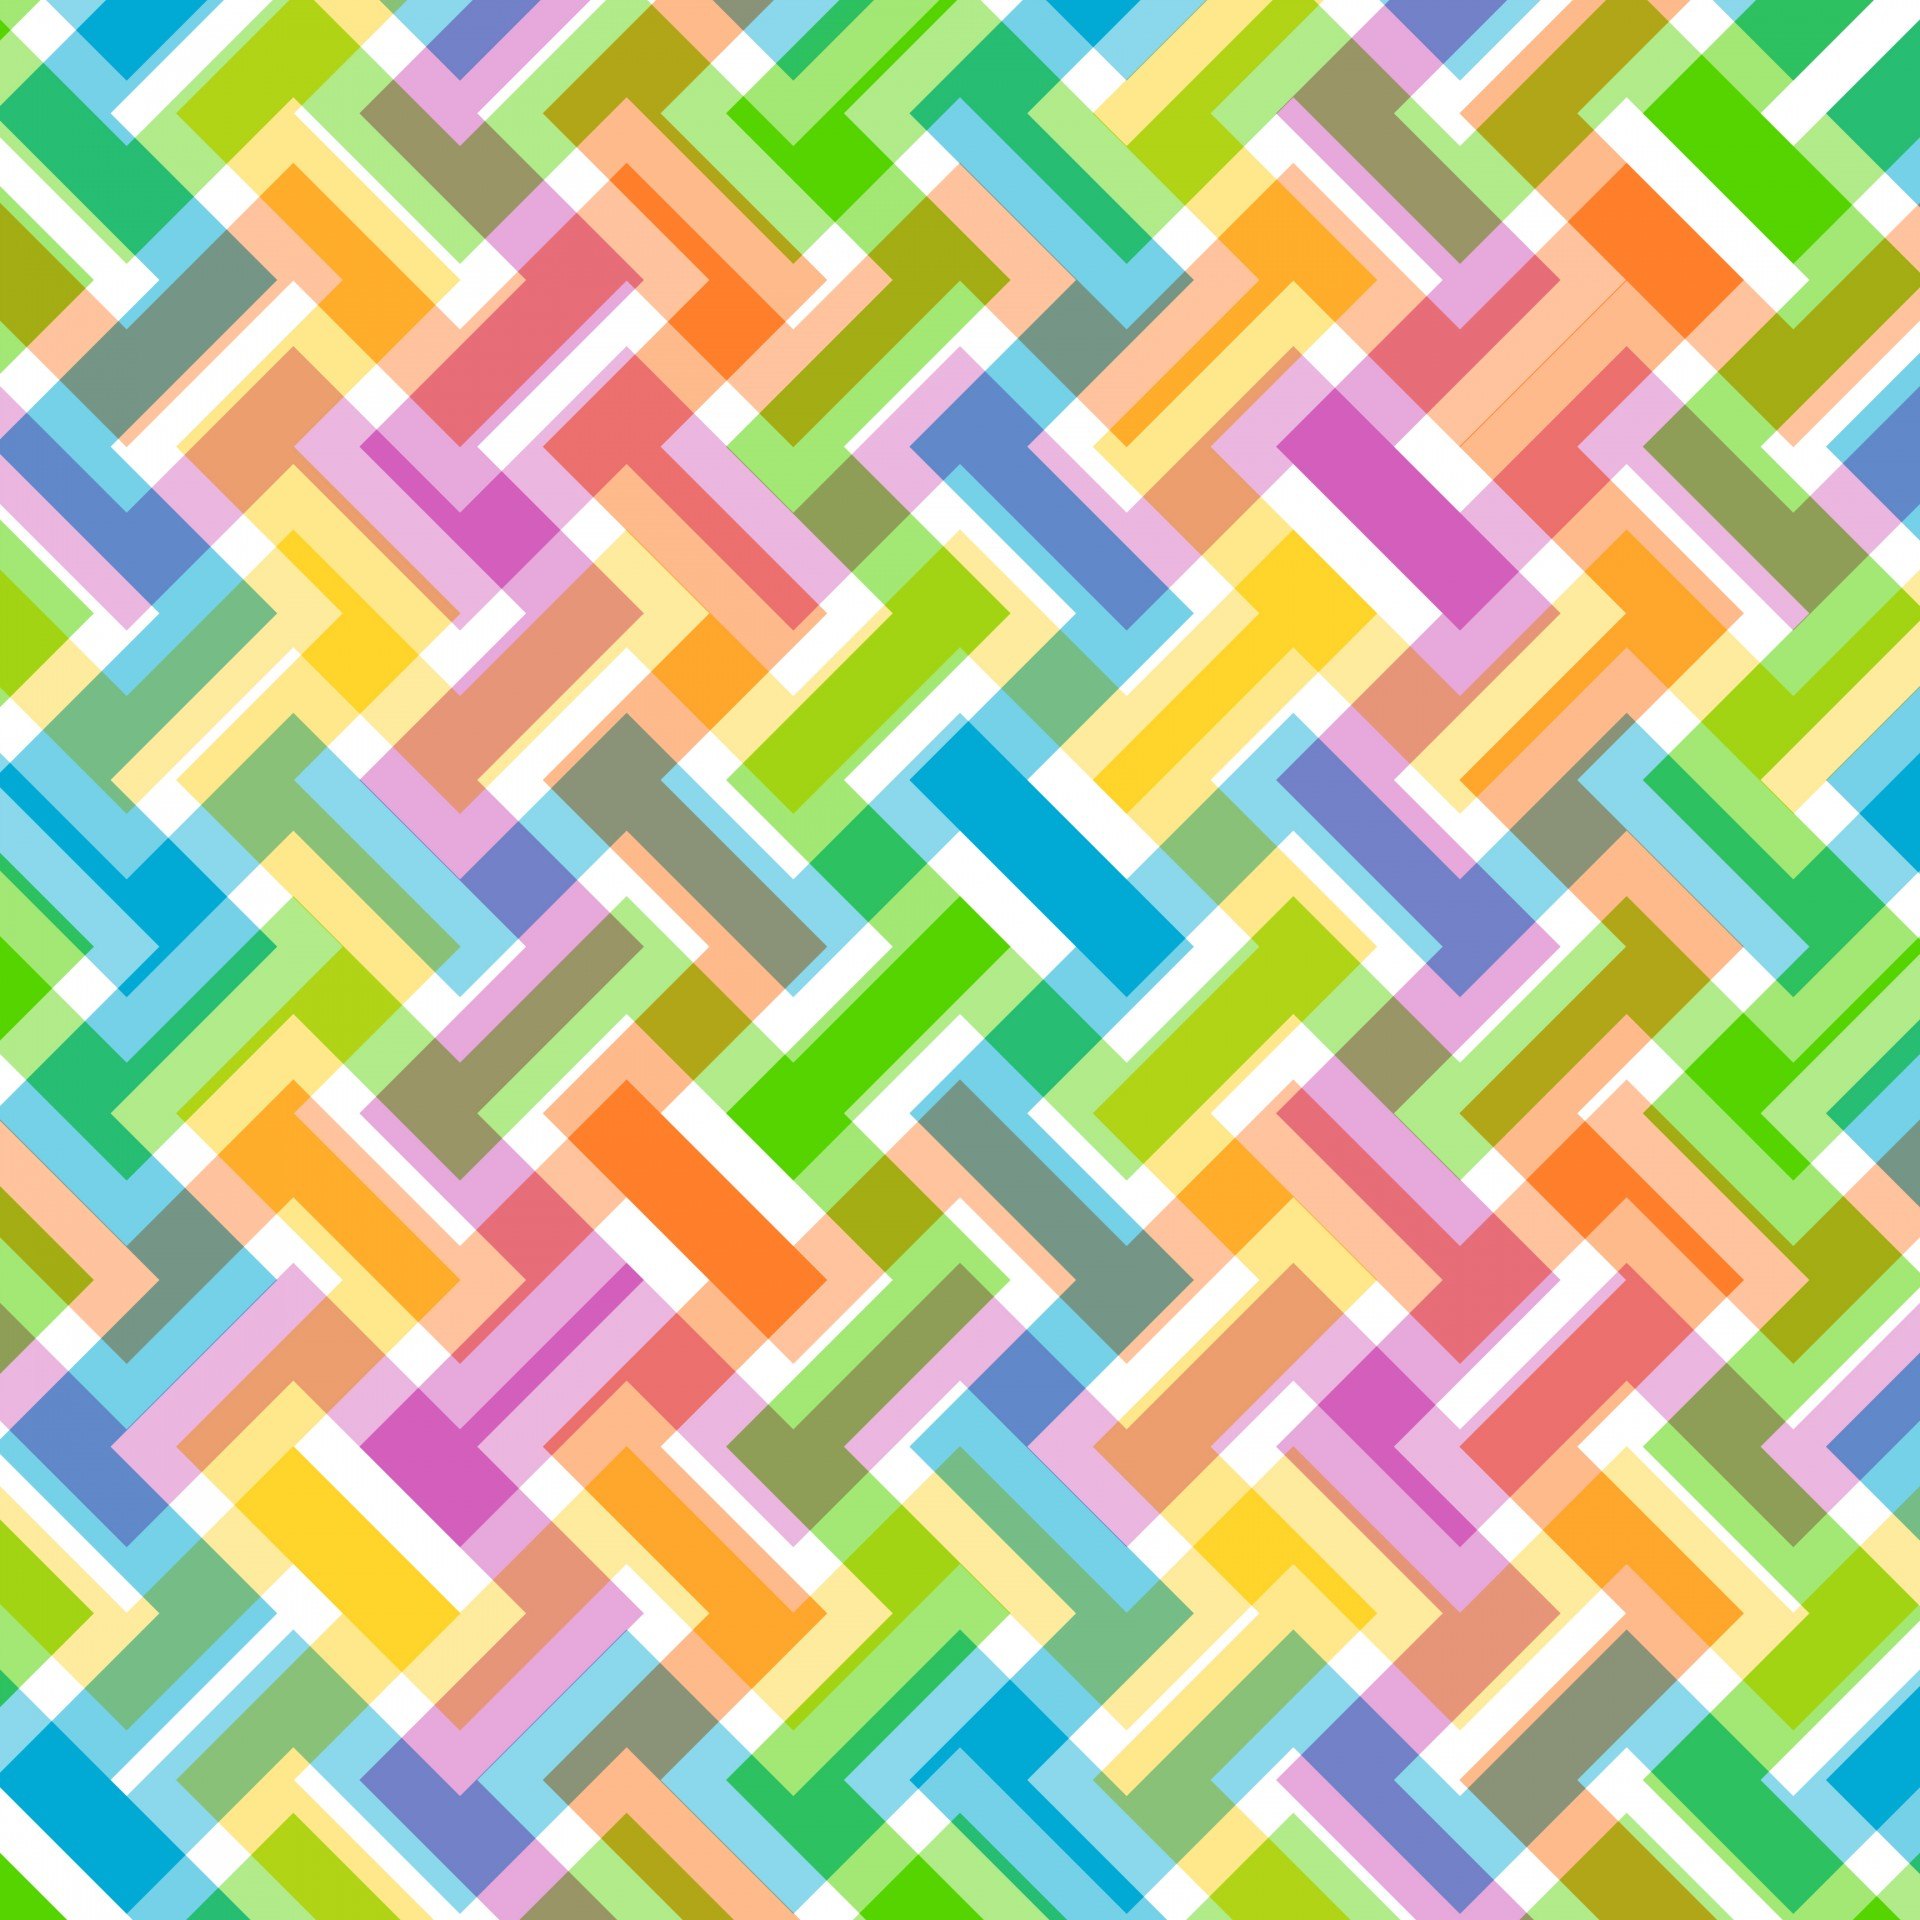 Abstract Pattern Colorful Wallpaper Free Stock Photo - Public Domain ...